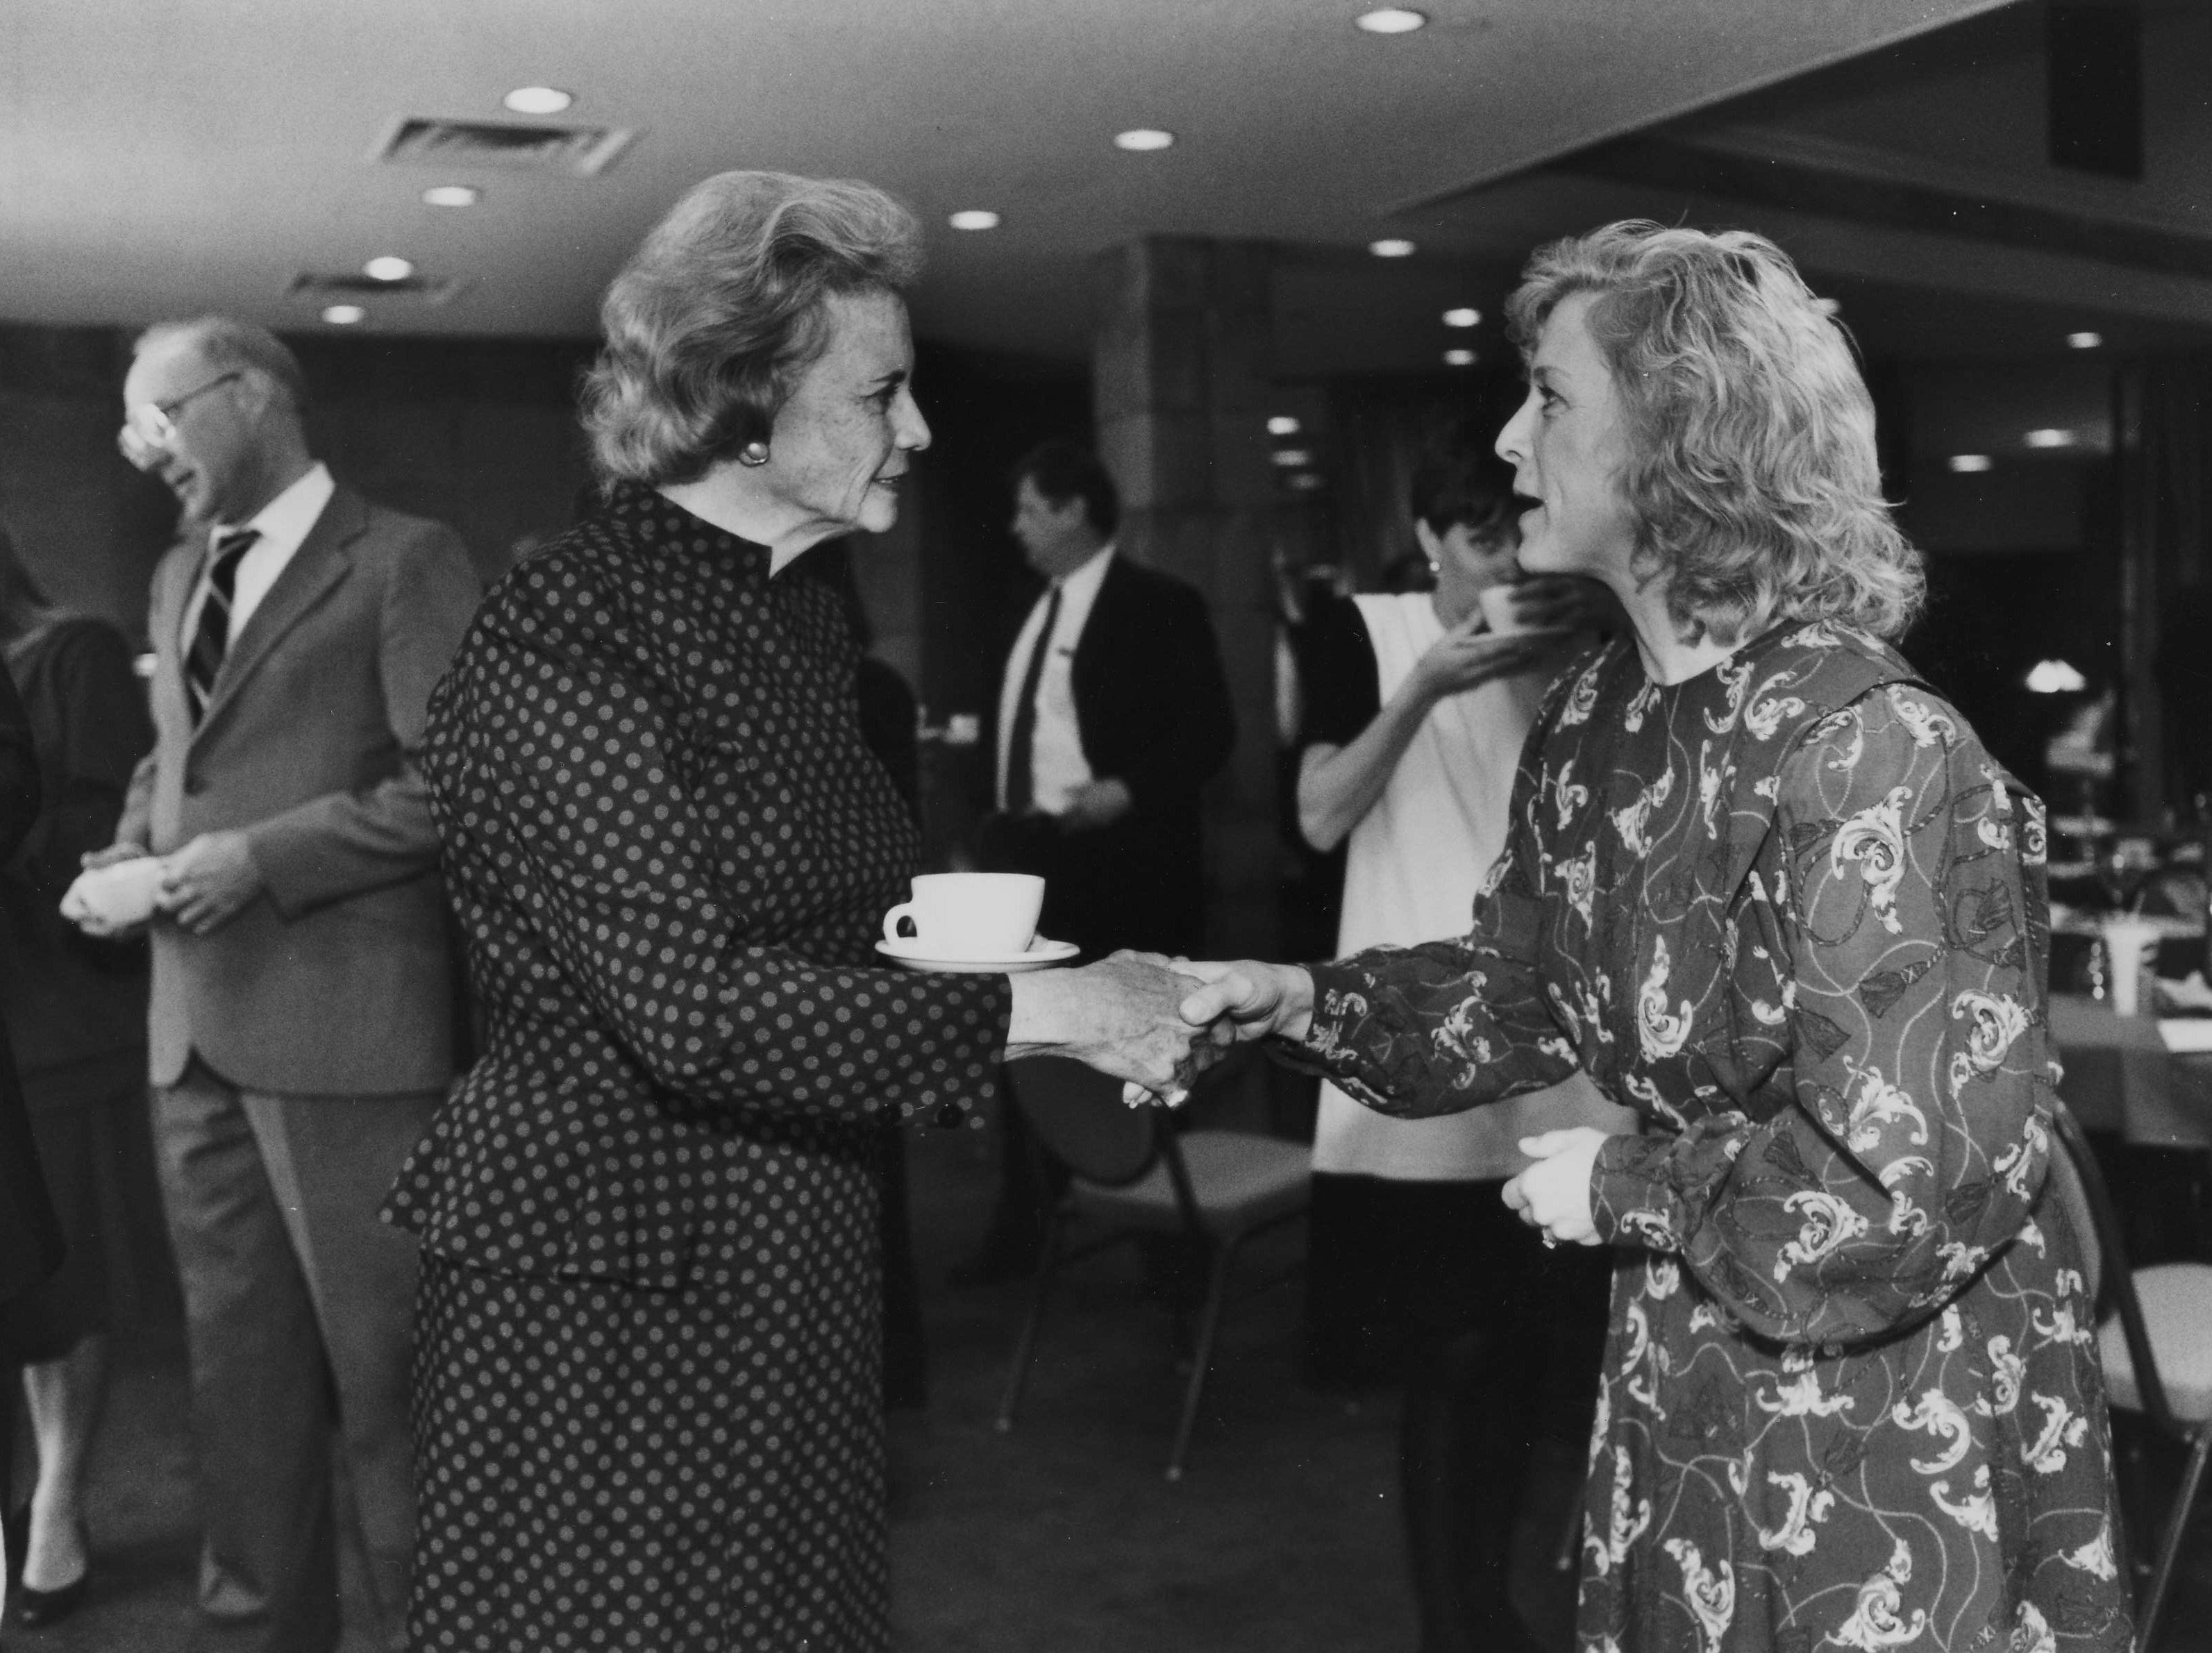 Sandra Day O'Connor meets Tucson attorney Constance Trecartin at the State Bar luncheon on Feb. 6, 1992.